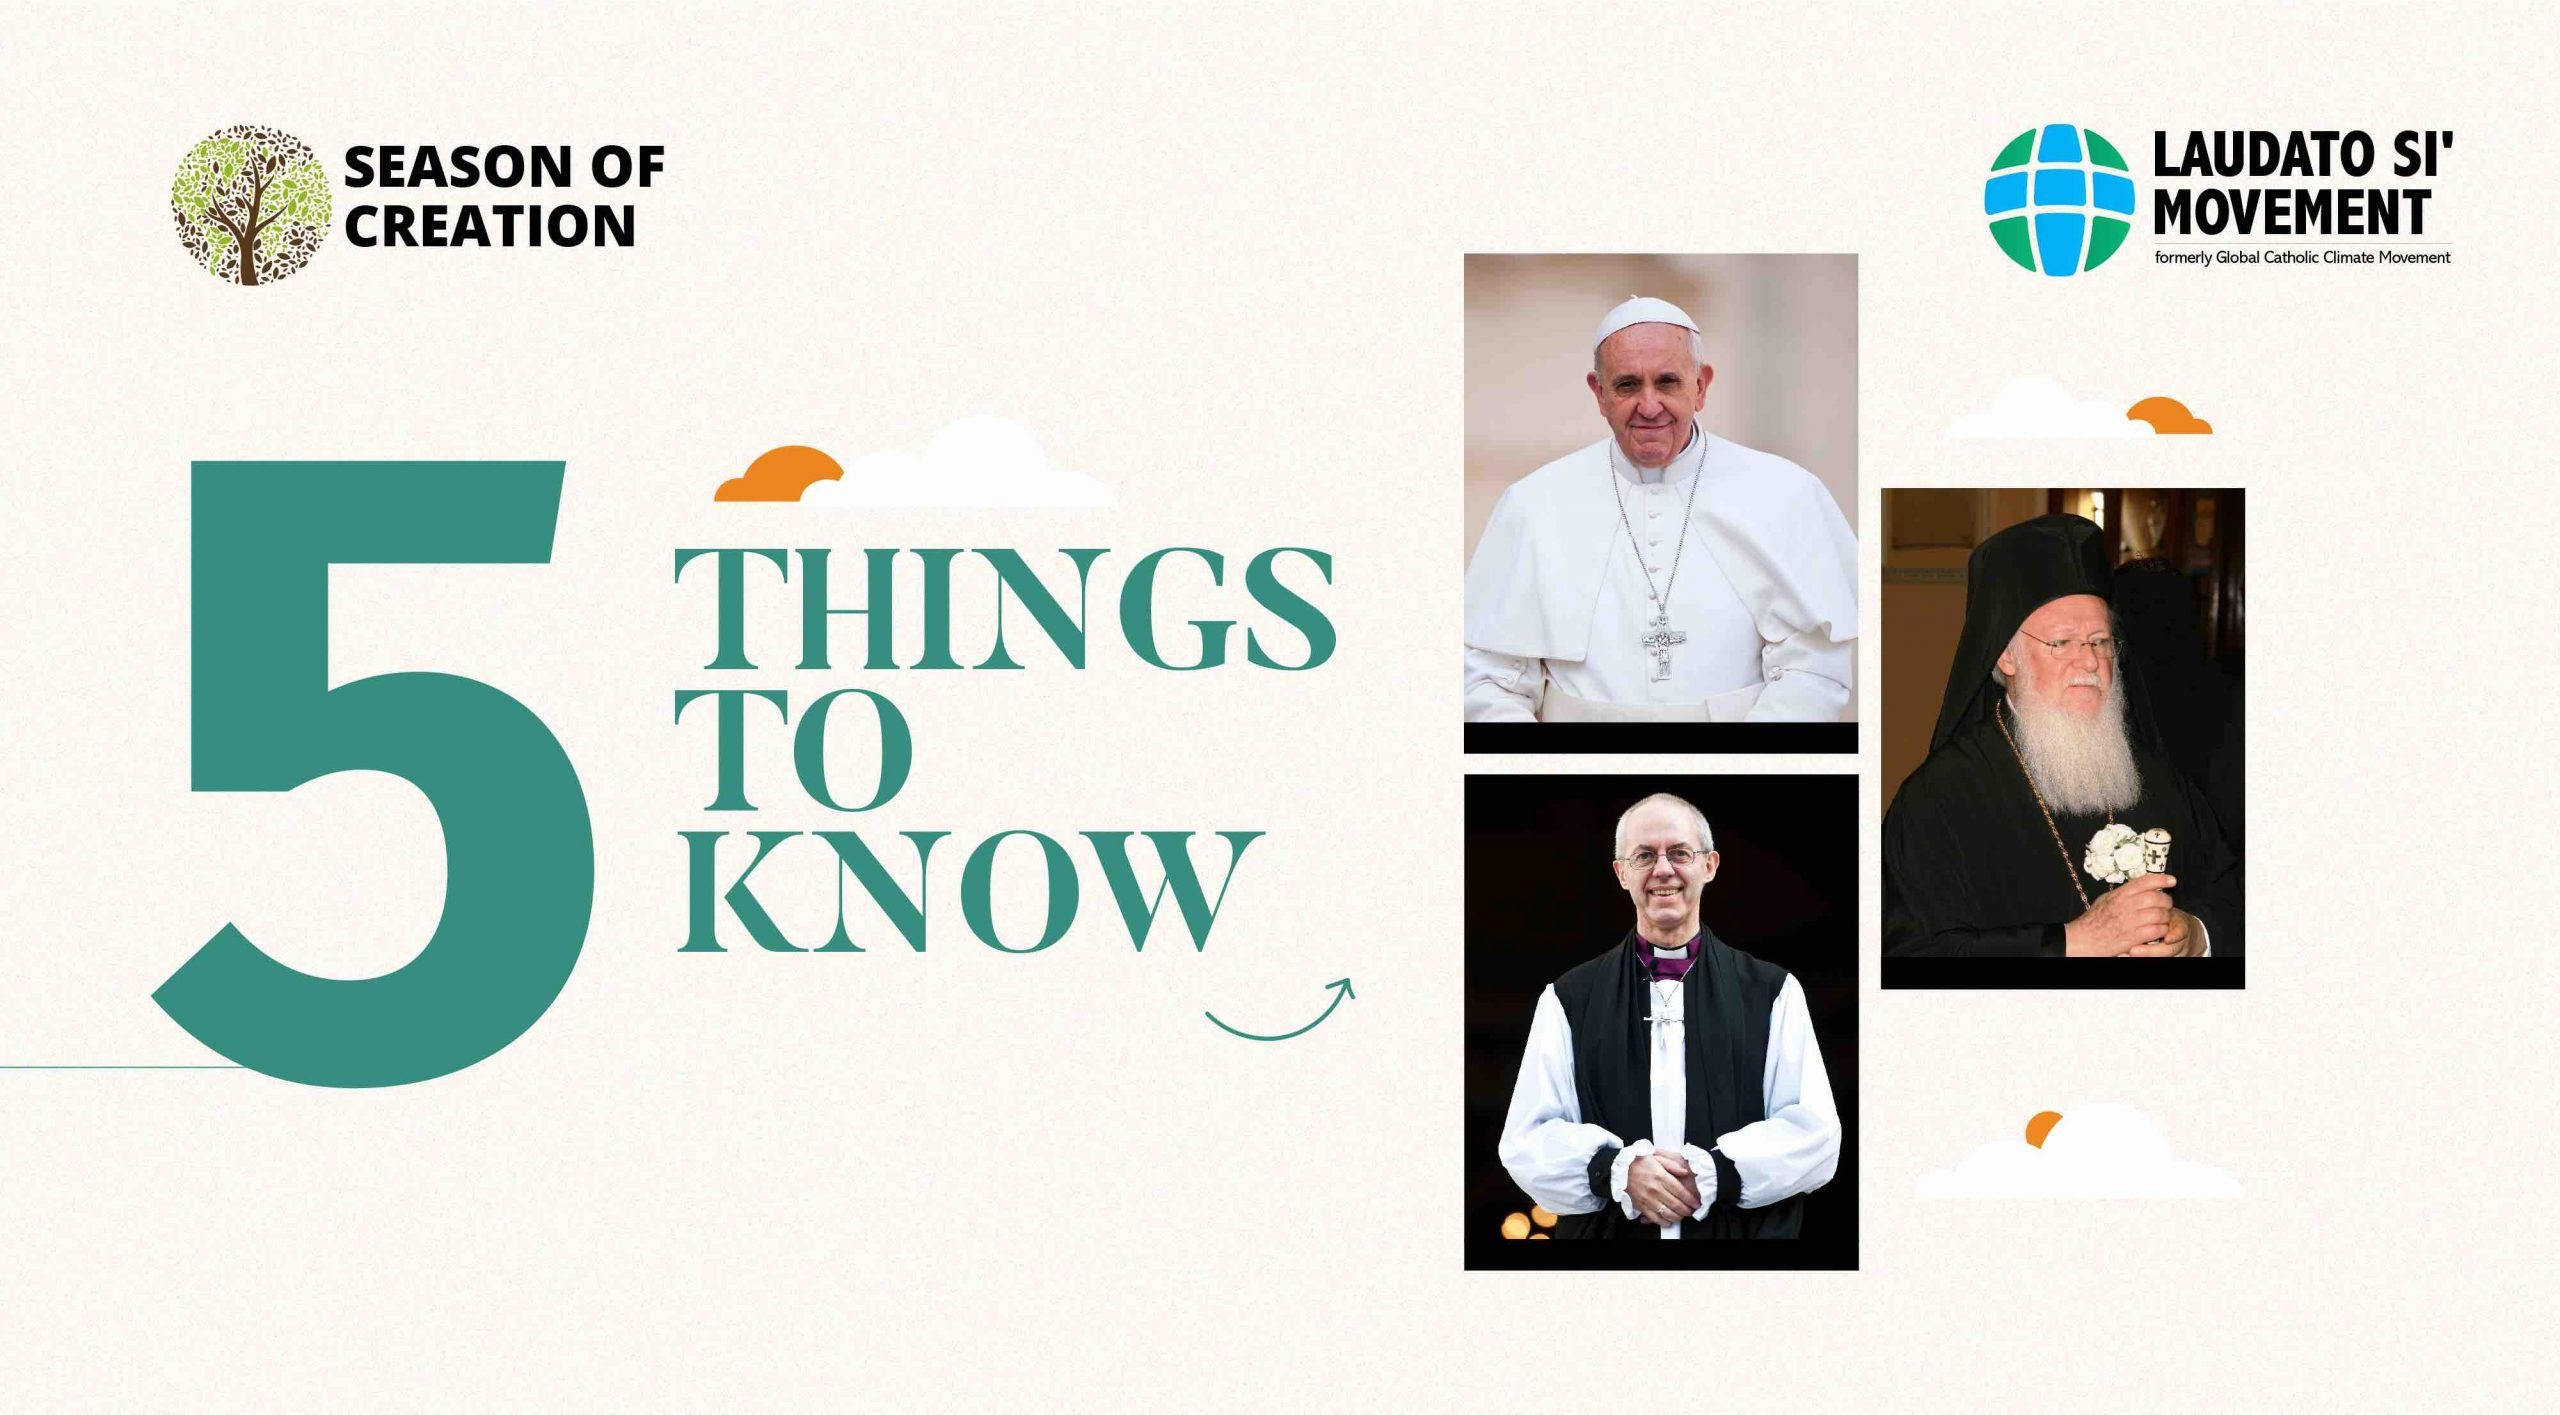 5 things to know about Pope Francis and Christian leaders' statement on Season of Creation